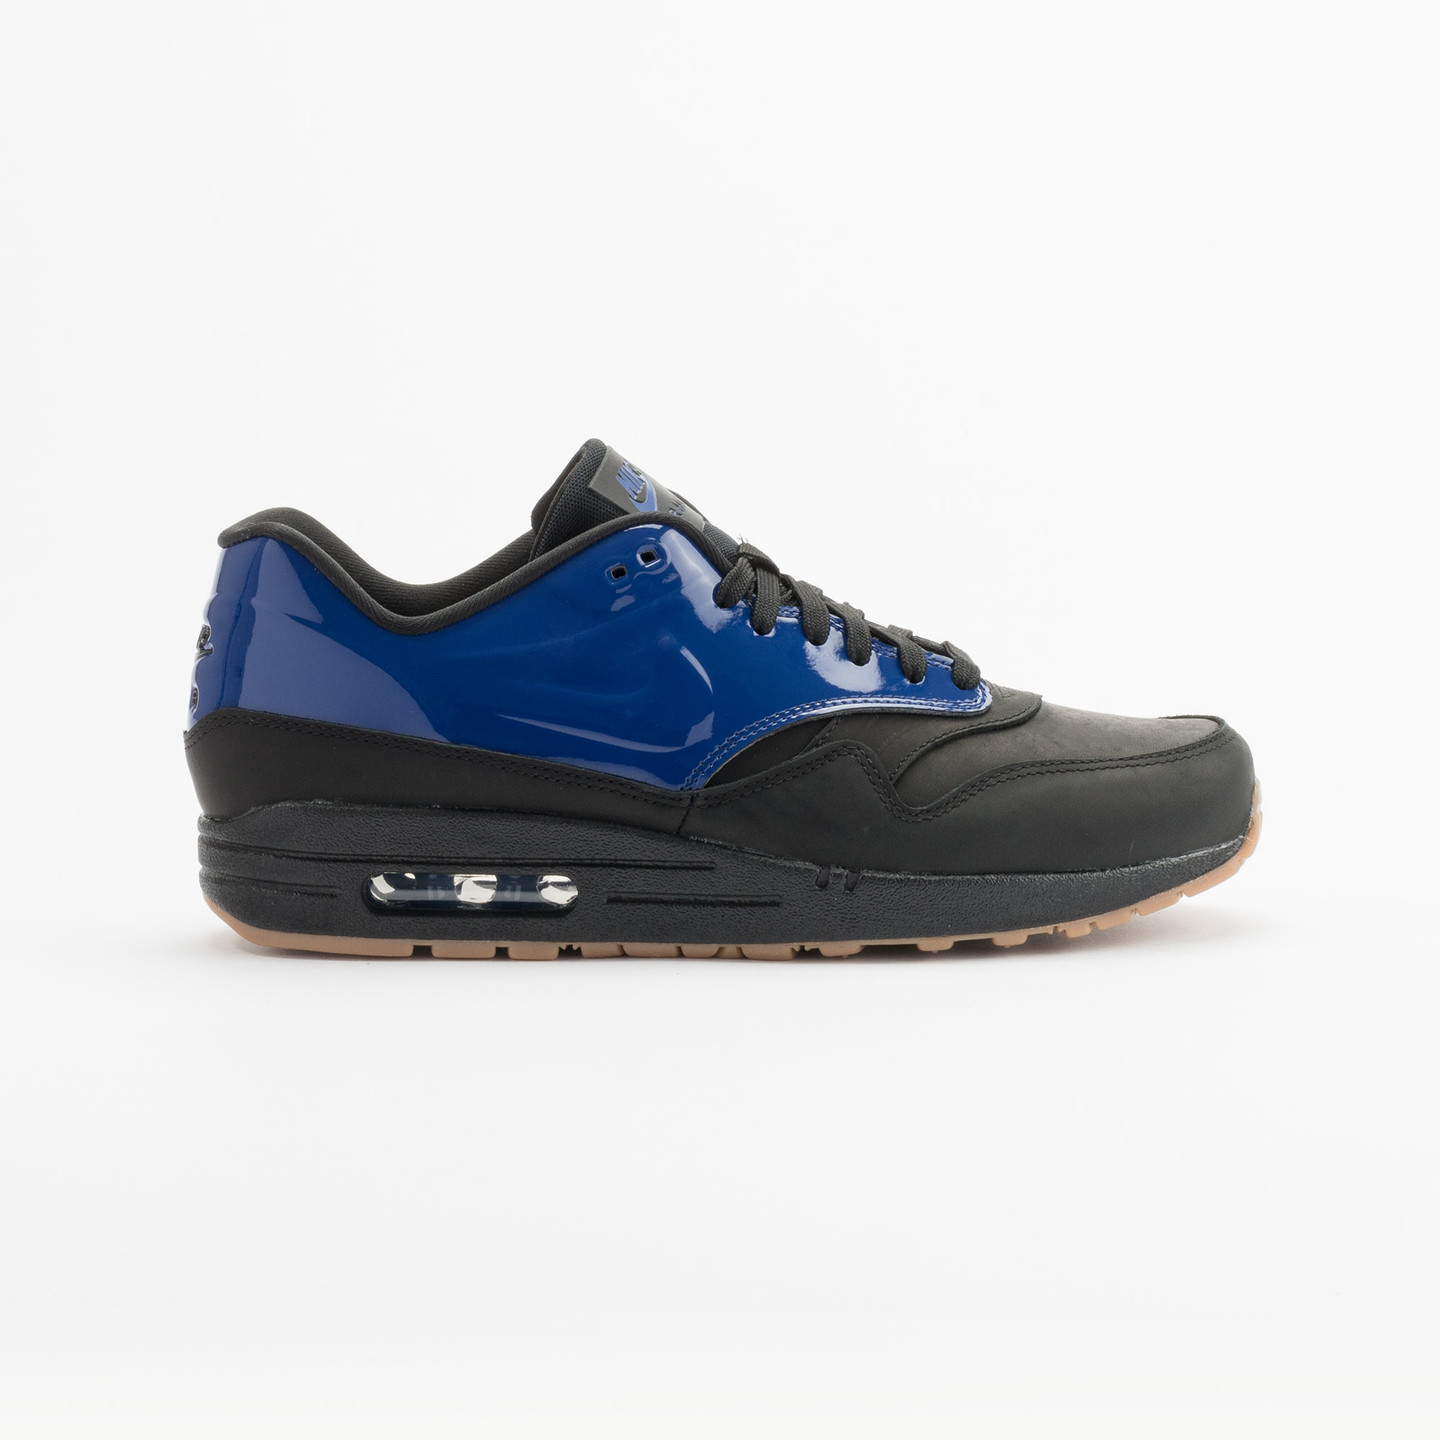 Nike Air Max 1 Vac Tech QS Deep Royal Blue / Black 831113-400-44.5